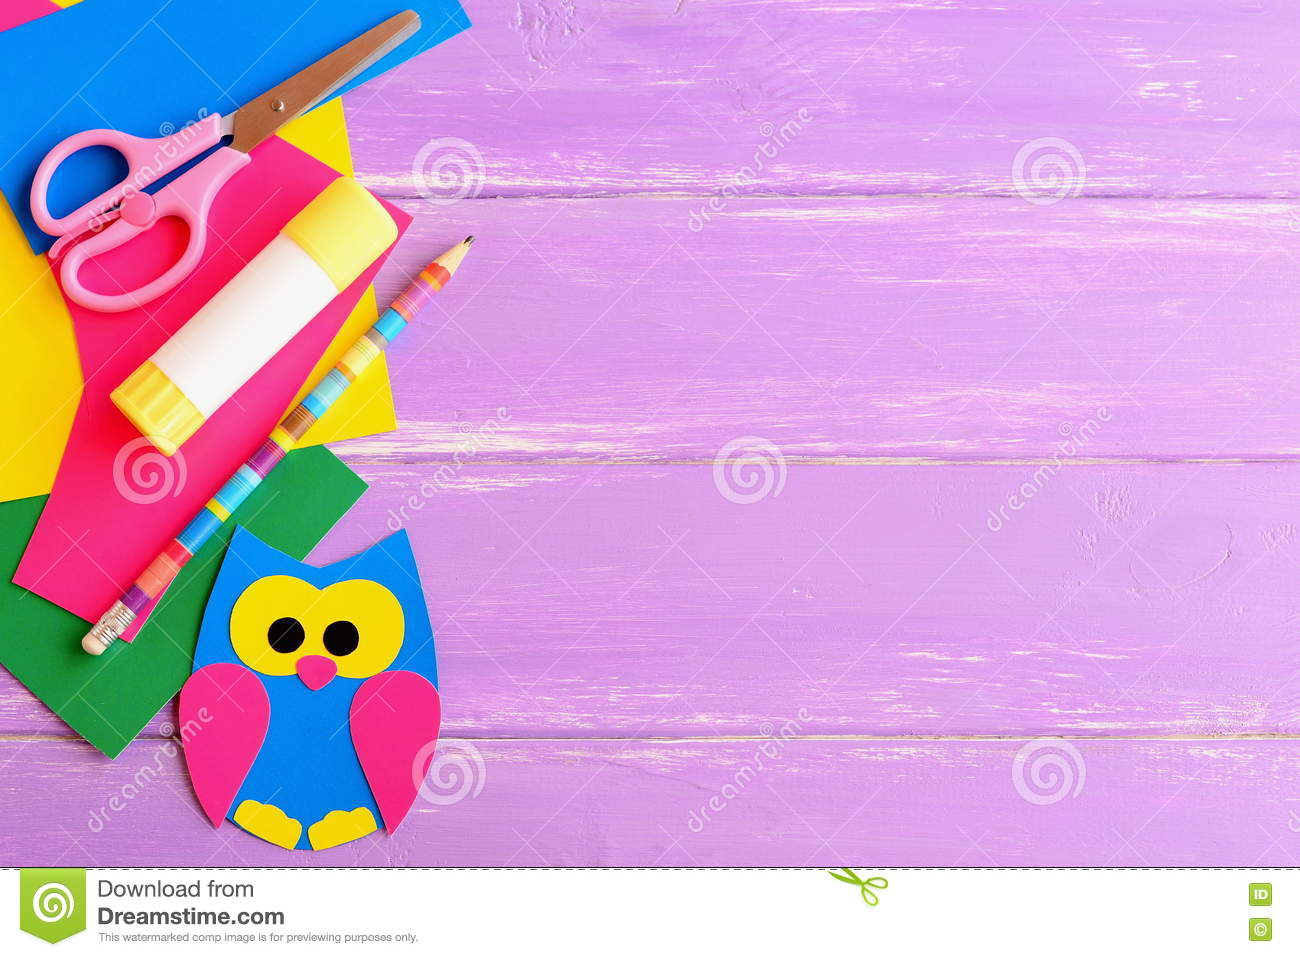 Cute Owl Decor, Stationery. Coloured Cardboard Owl Decor, Scissors ...